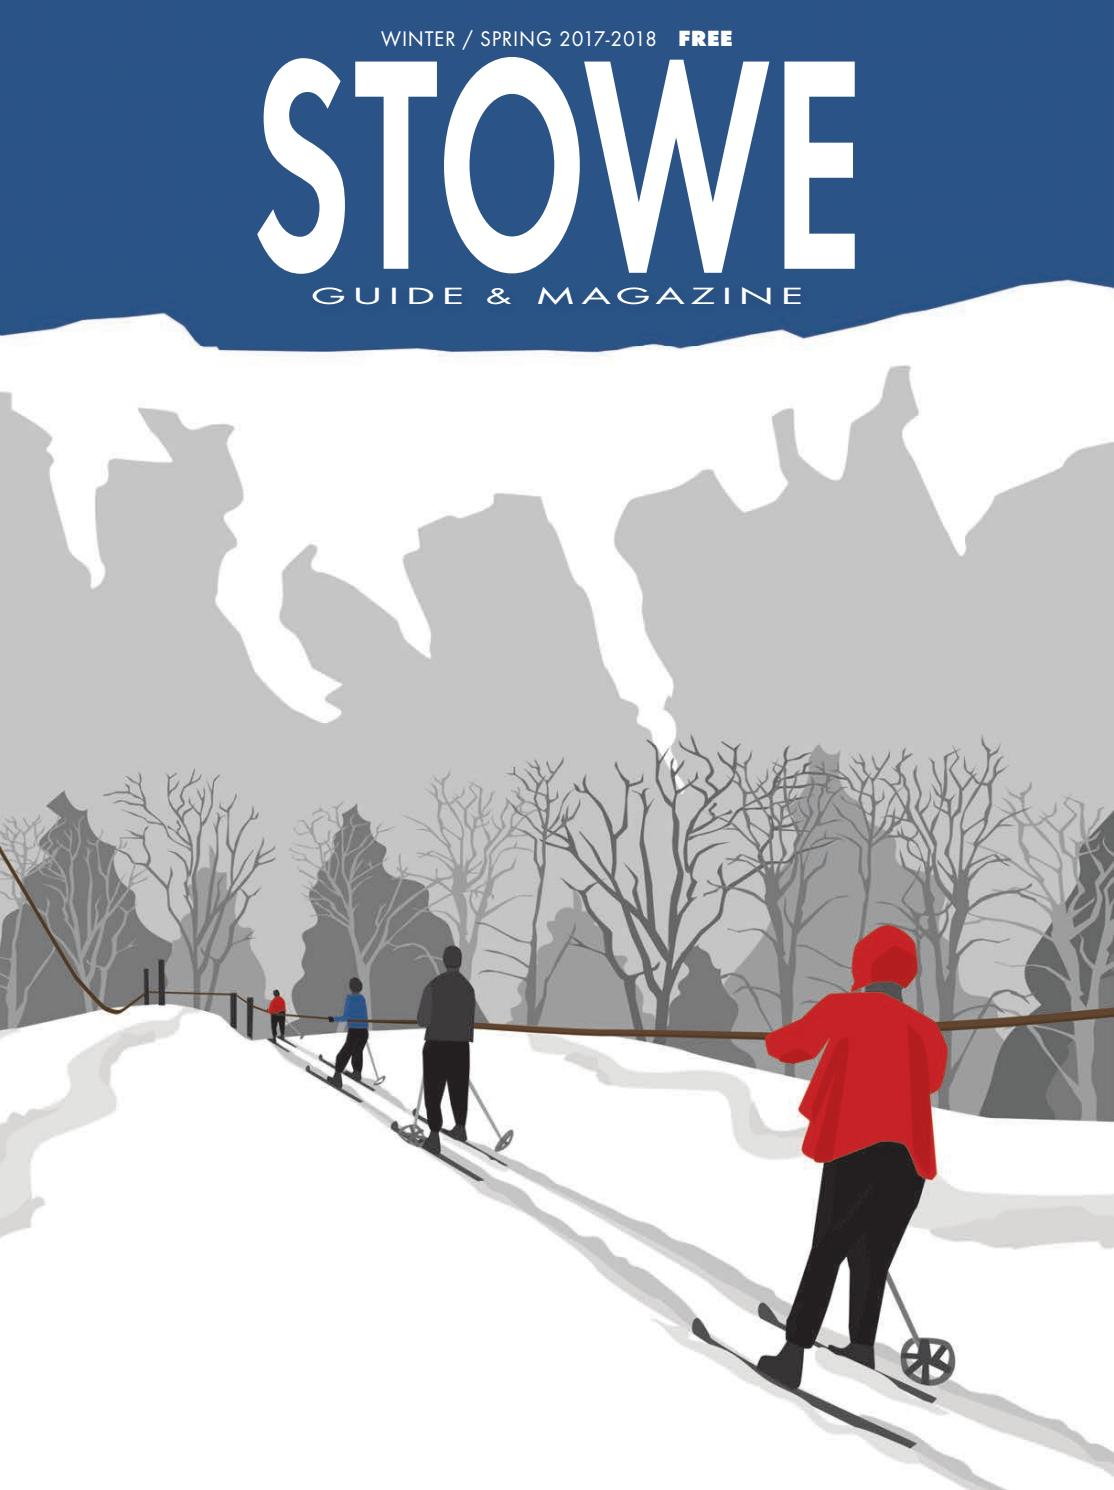 Stowe Guide Magazine Winter Spring 2017 18 By Stowe Guide Magazine Issuu